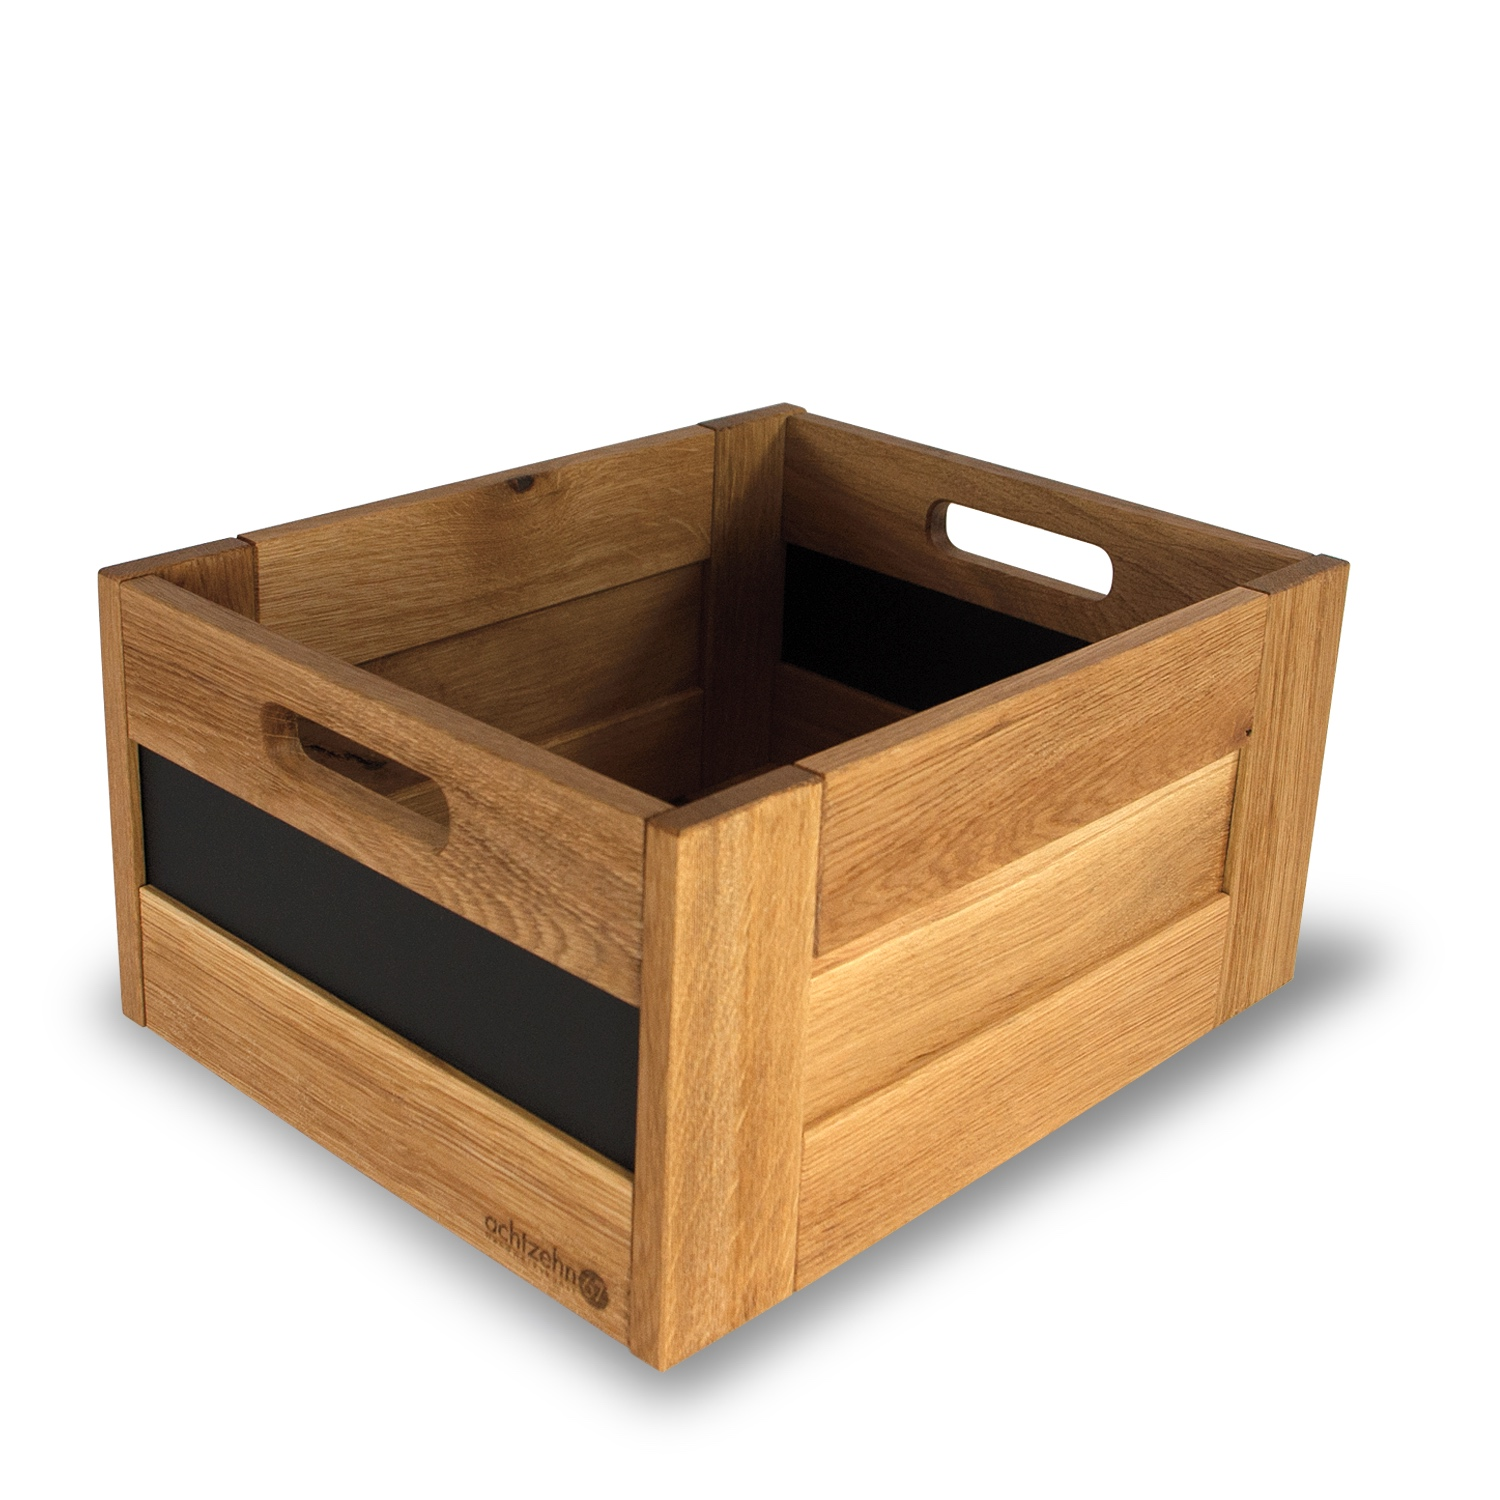 tafelbox holzbox 20 holz werkstatt design. Black Bedroom Furniture Sets. Home Design Ideas